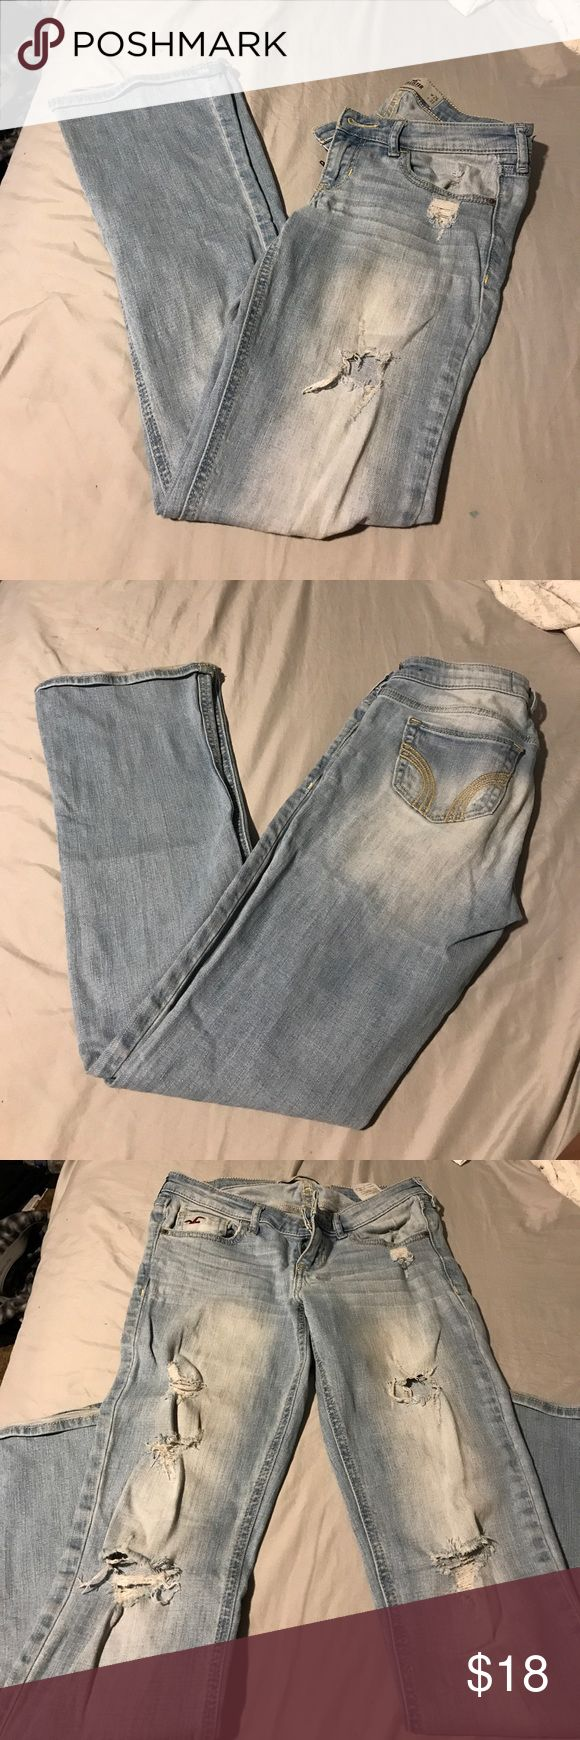 Hollister boot cut jeans Hollister size 3s boot cut jeans. Good condition, other than the very bottom of the jeans (shown in pics). Hollister Jeans Boot Cut